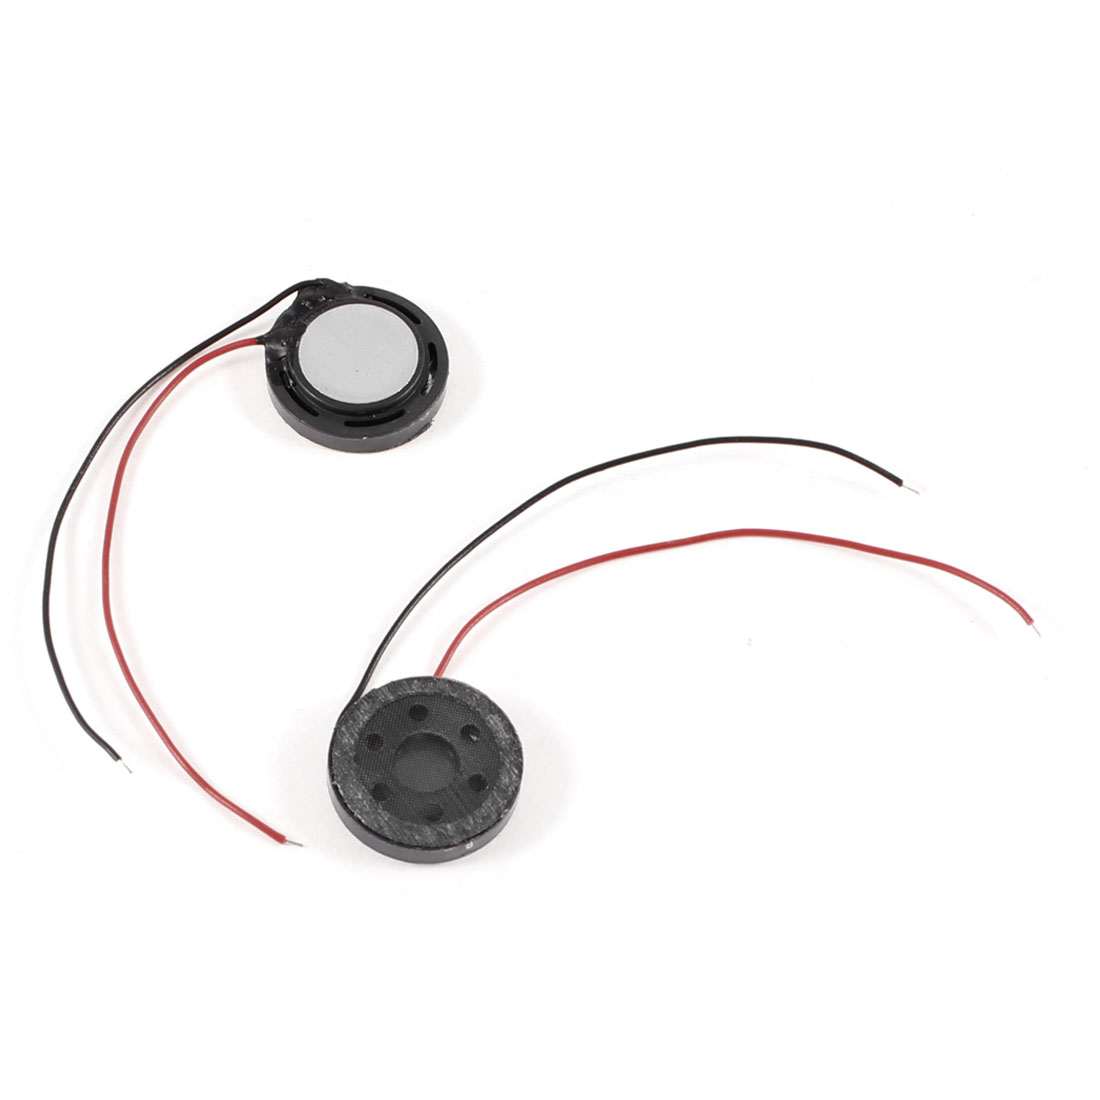 2pcs 15mm Round Magnetic Magnet Speaker Tweeter Horn 8 Ohm 1W